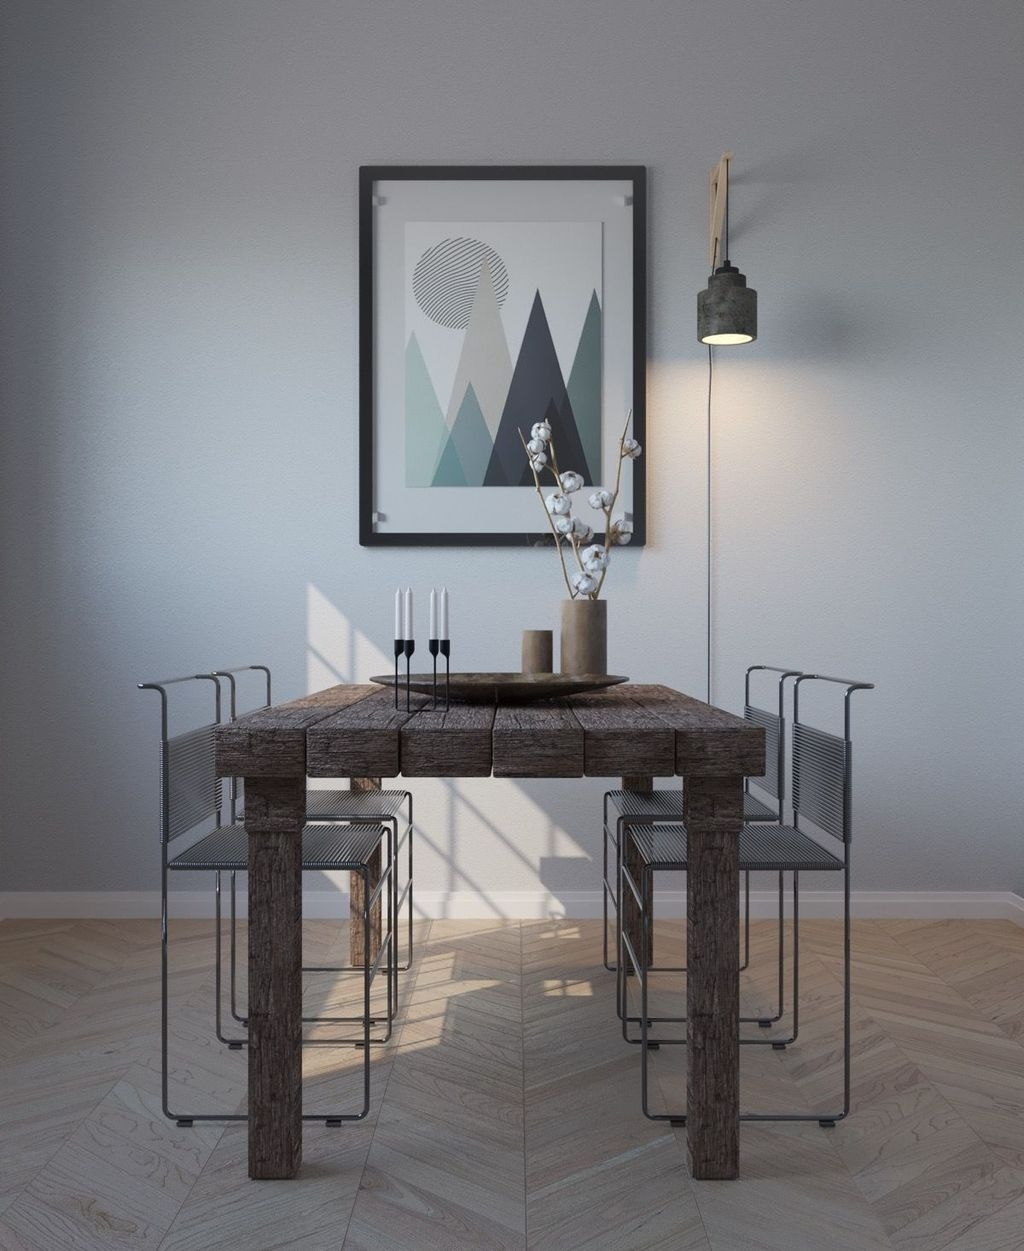 Best Minimalist Dining Room Design Ideas For Dinner With Your Family08